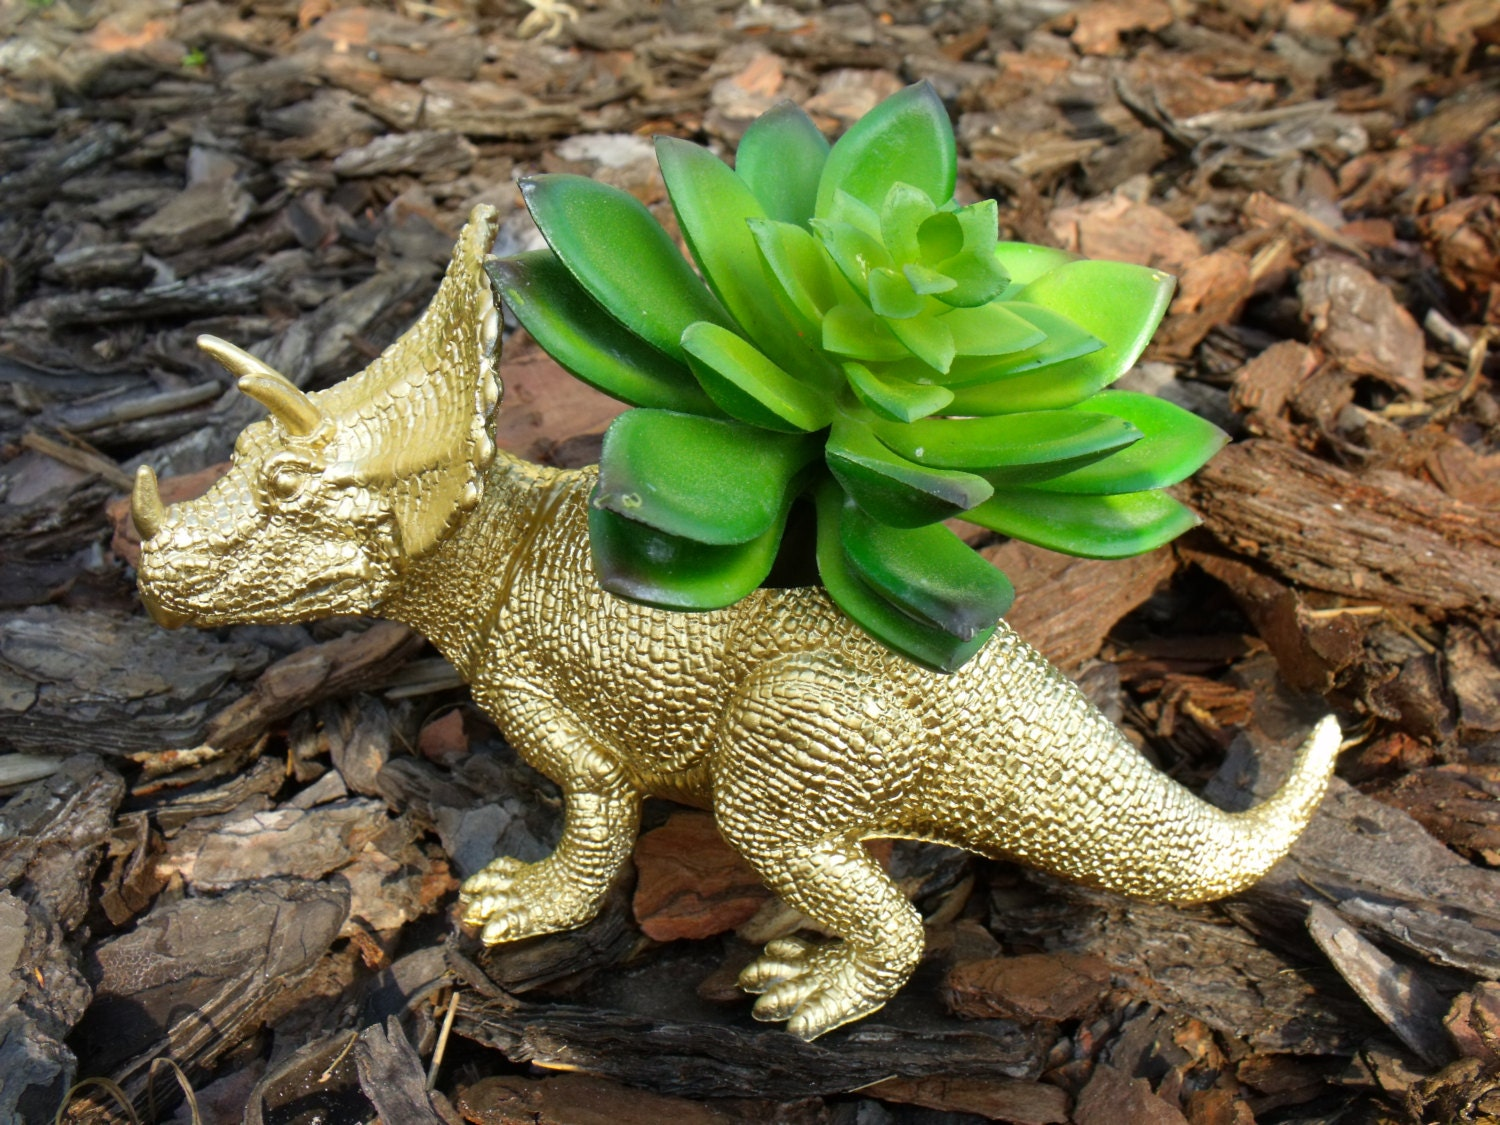 Metallic Gold Triceritops Dinosaur Planter For Succulents And